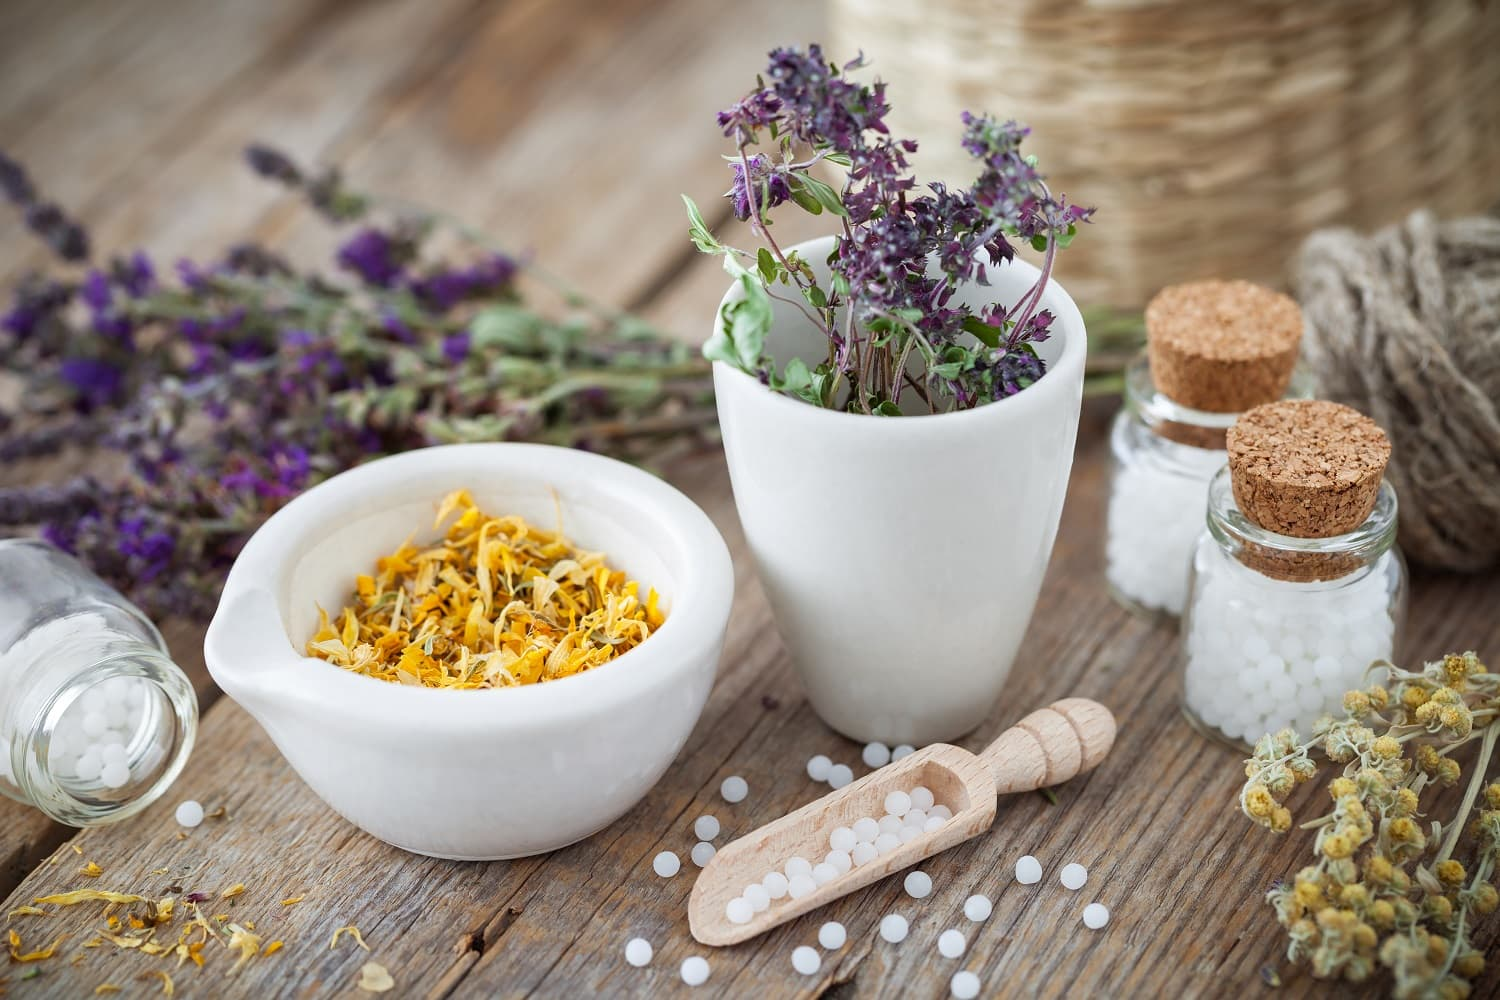 Homeopathy & conventional medicine